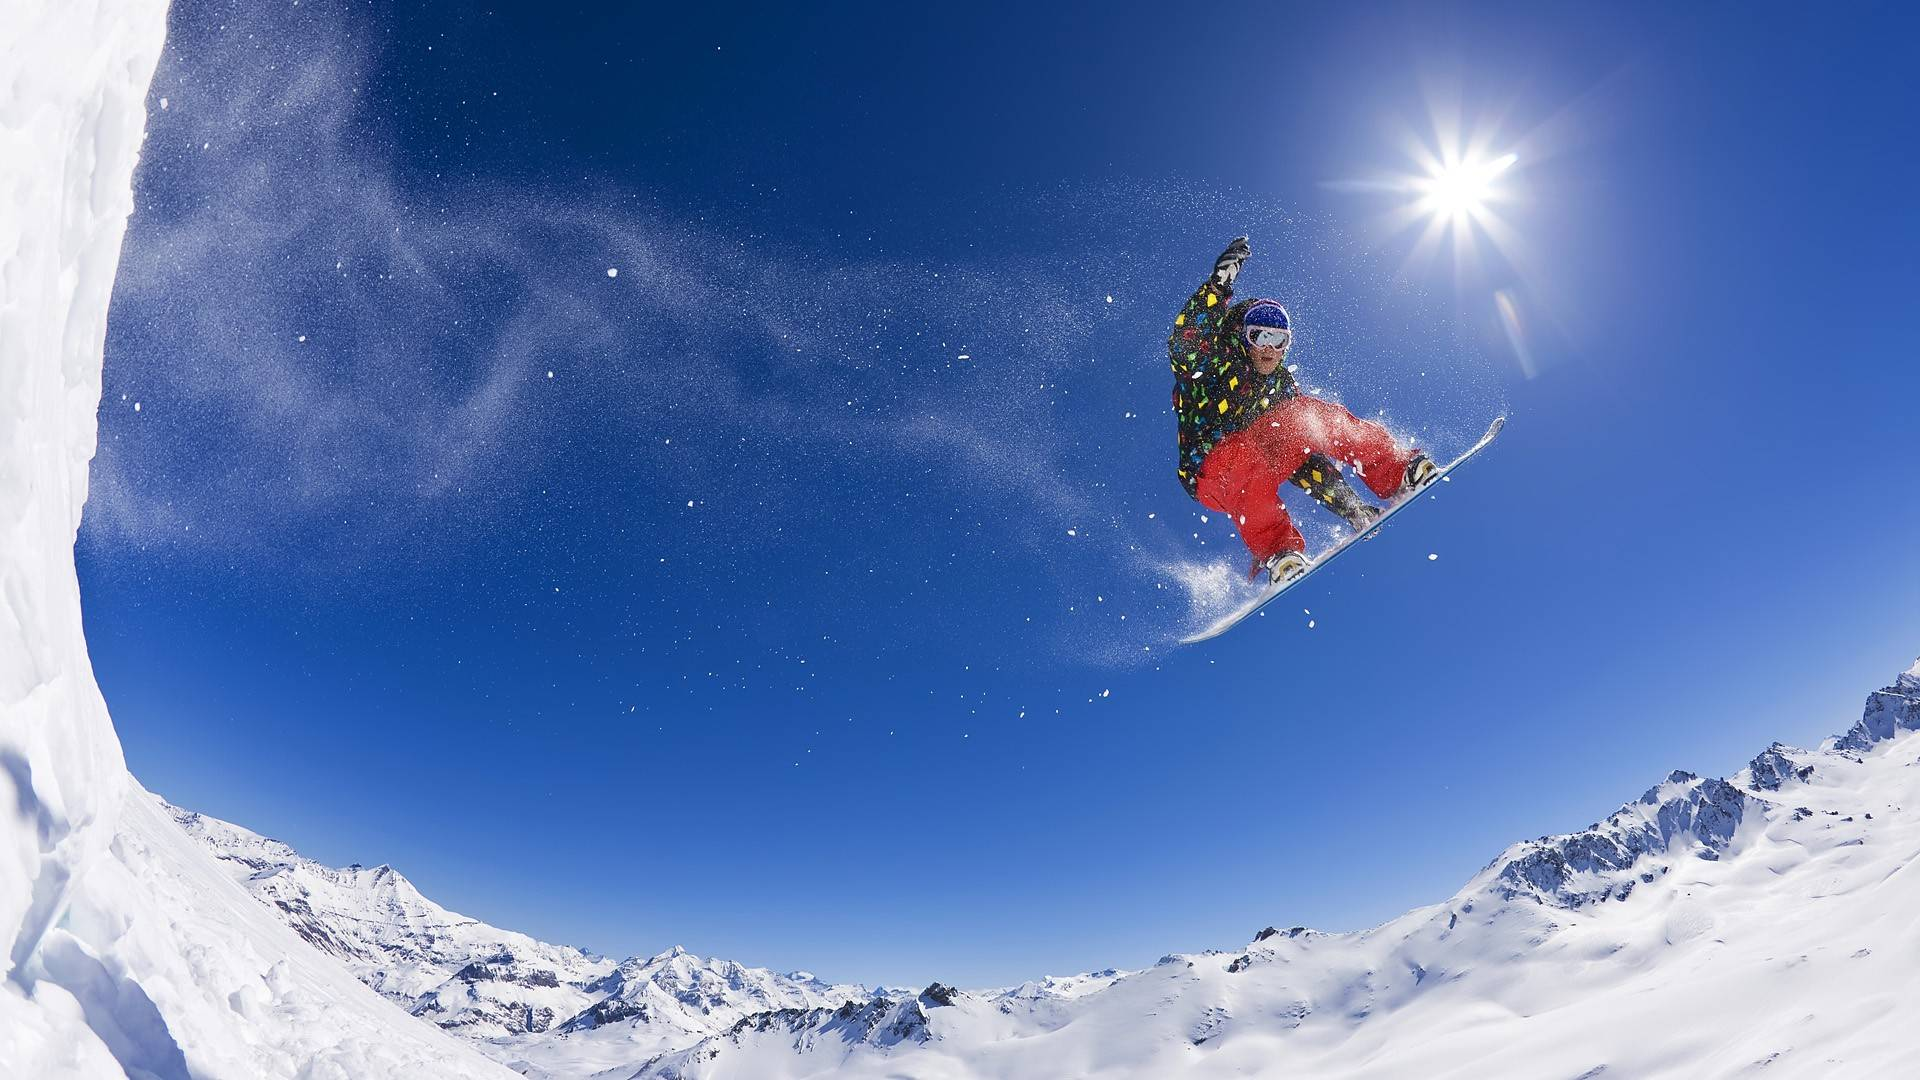 snowboarding-1920-1080-wallpaper